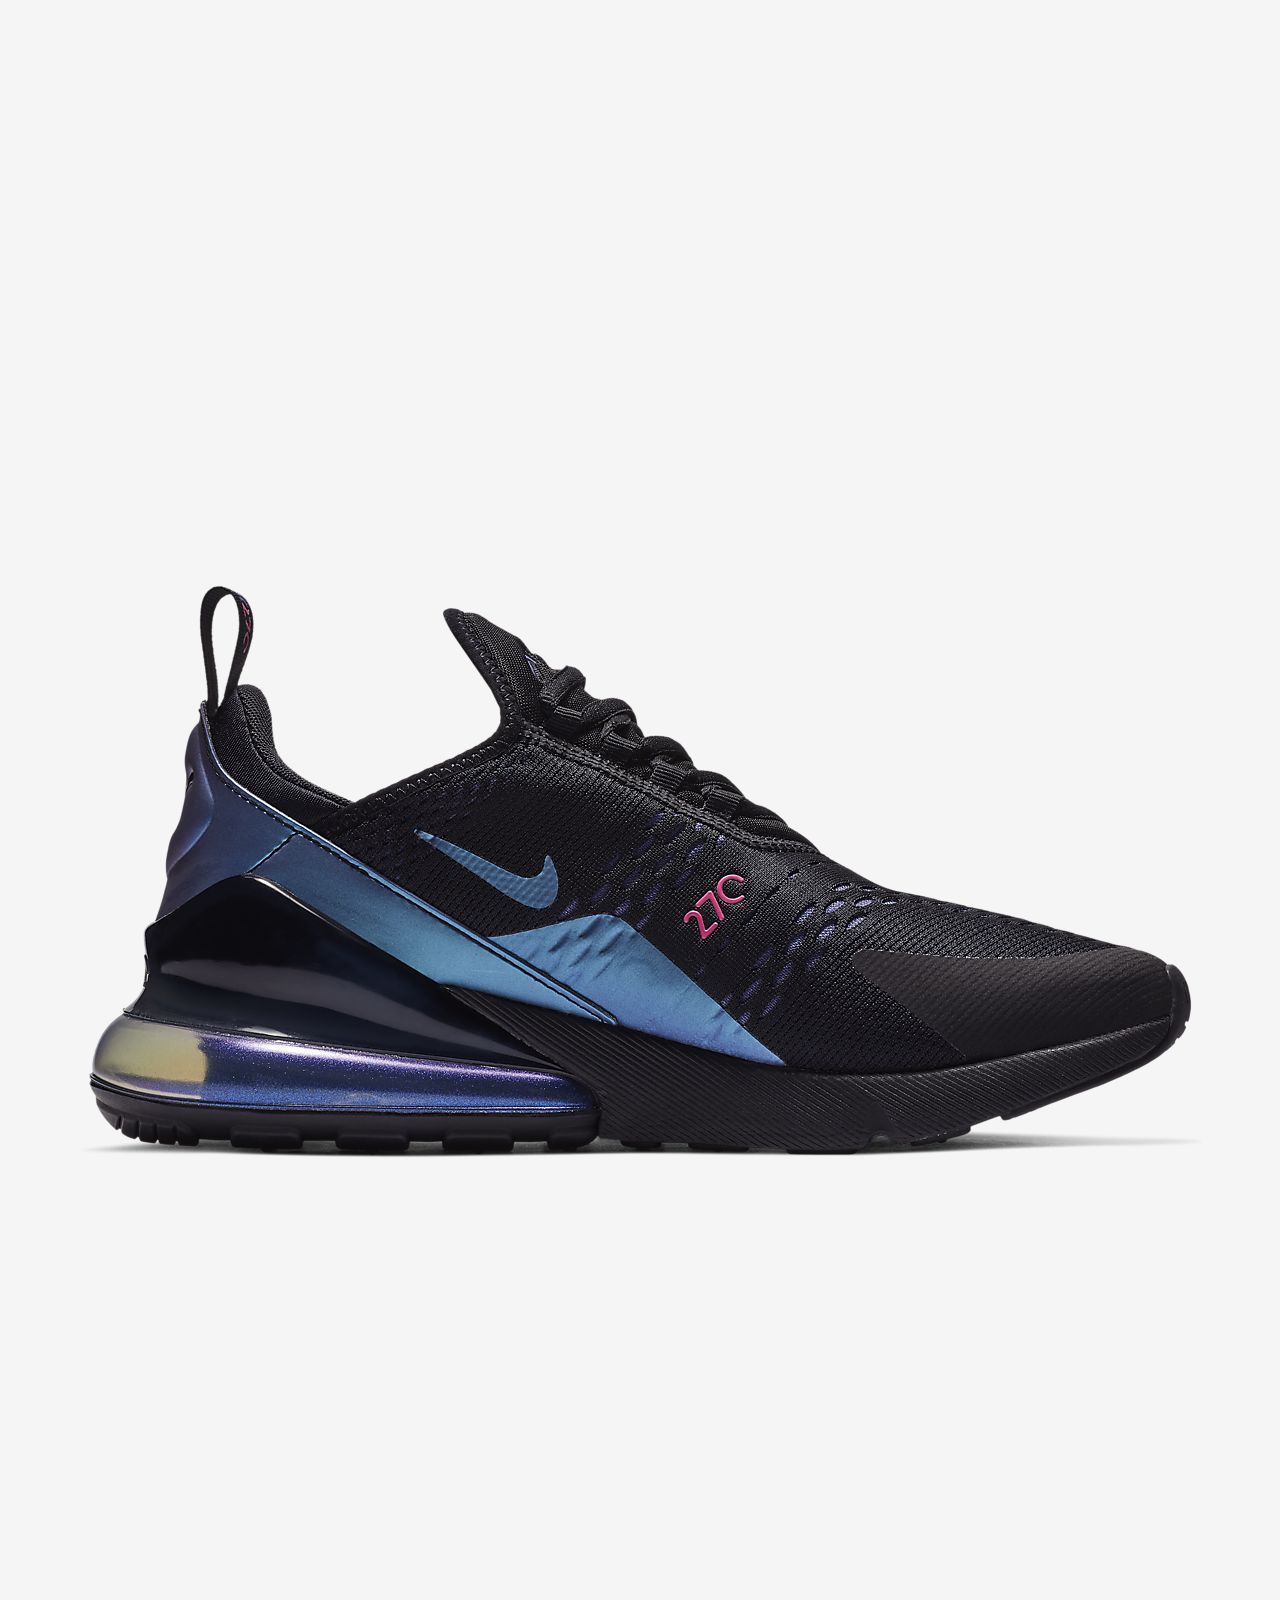 cheap for discount 5af9d d45a8 ... Chaussure Nike Air Max 270 pour Homme